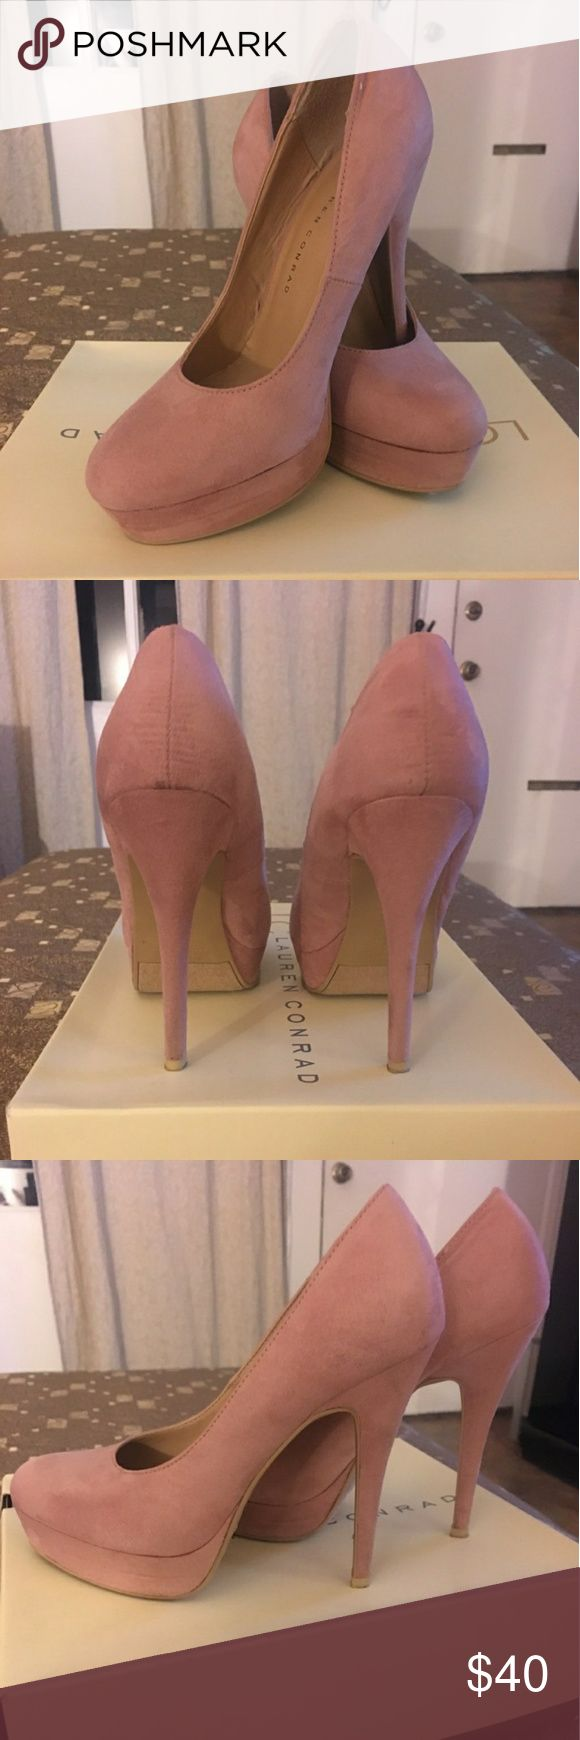 Sexy comfy LC Suede Platform Pumps!! LC Lauren Conrad Suede Platform Pumps Mauve color size 7, in excellent used condition🙂 LC Lauren Conrad Shoes Heels